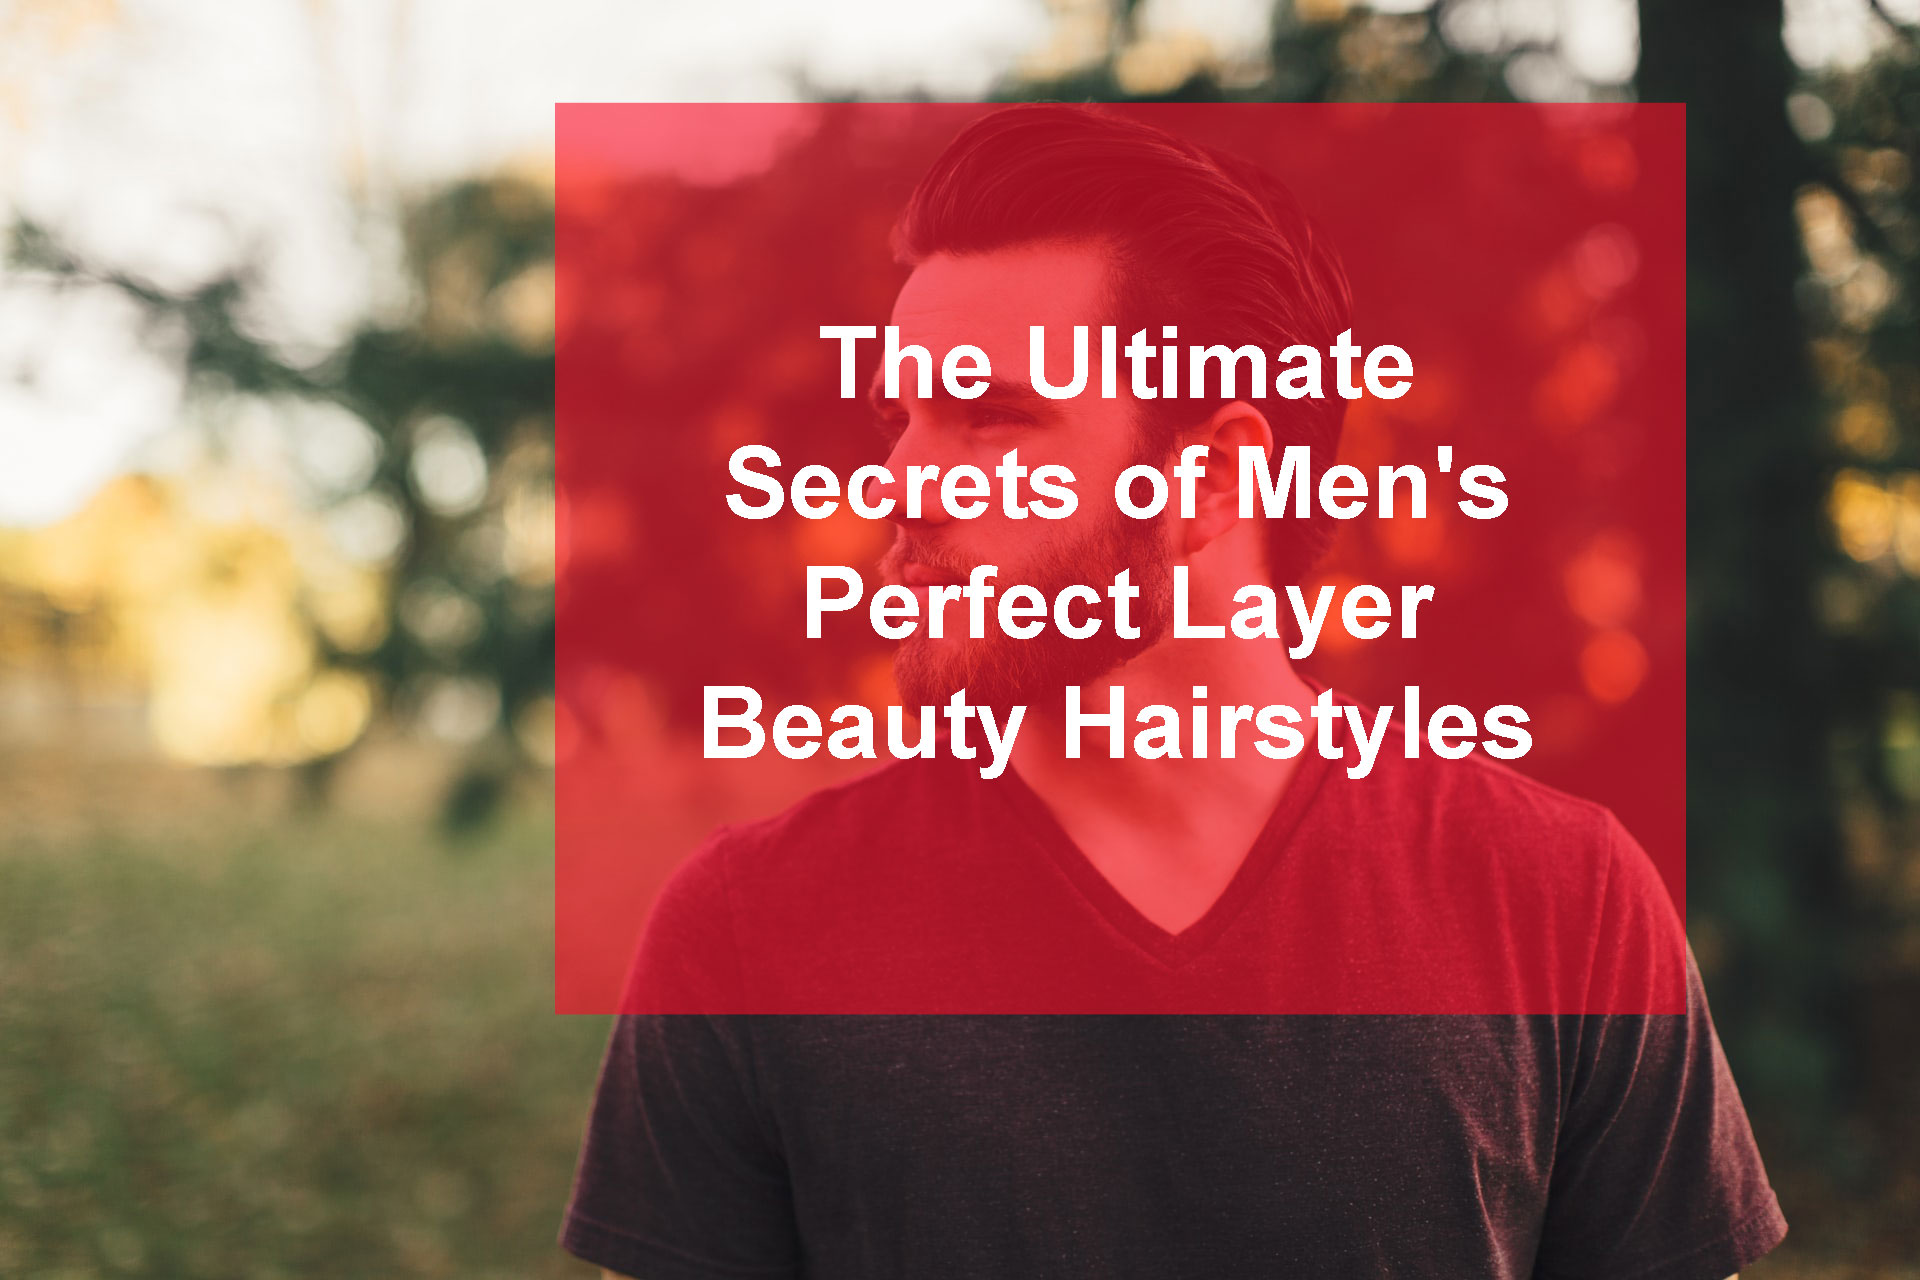 The Ultimate Secrets of Men's Perfect Layer Beauty Hairstyles